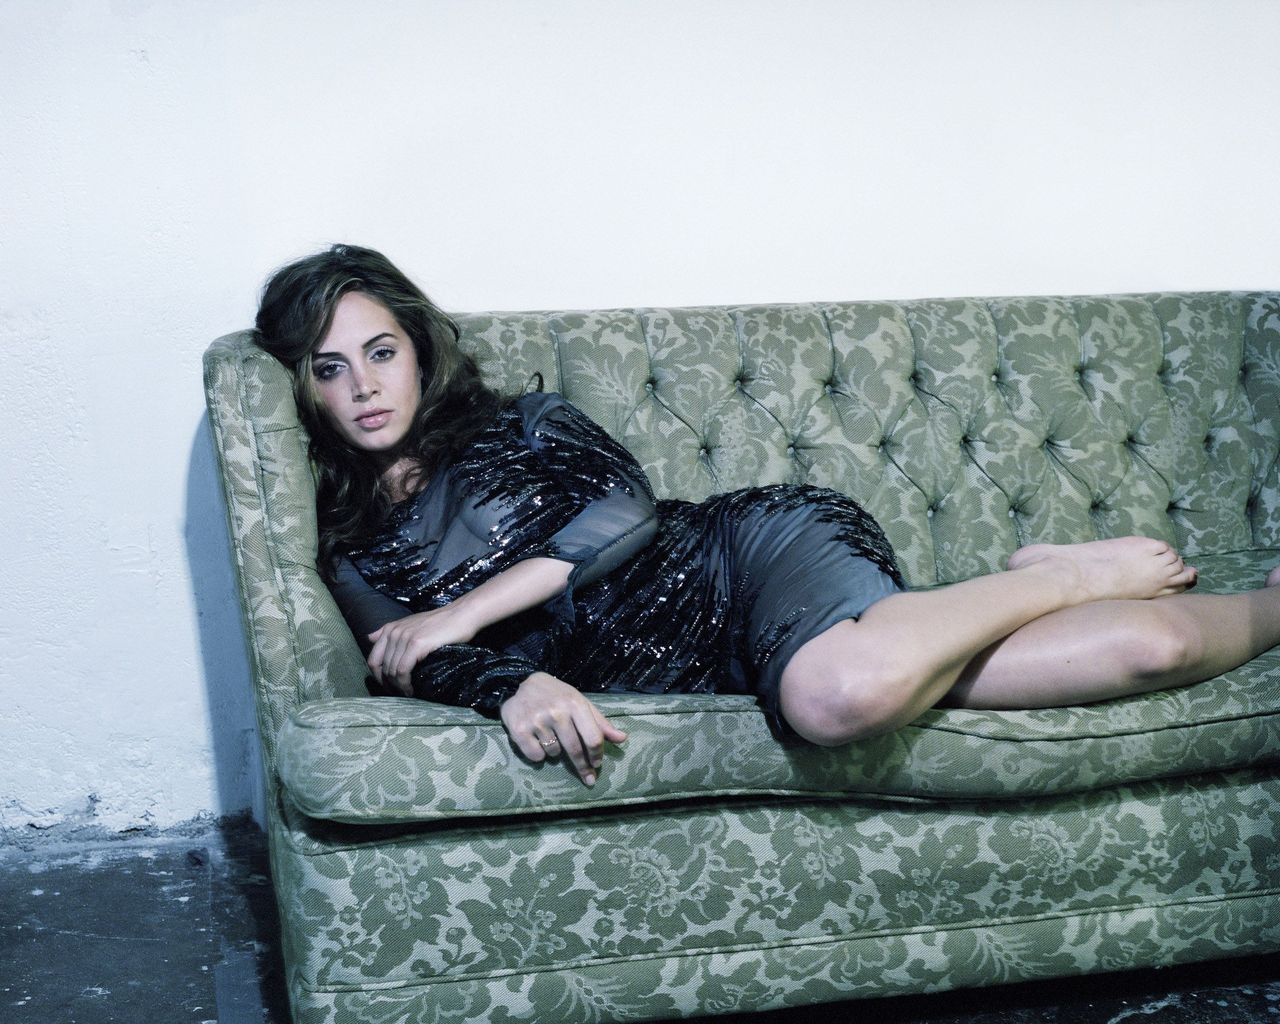 Eliza Dushku Sofa for 1280 x 1024 resolution